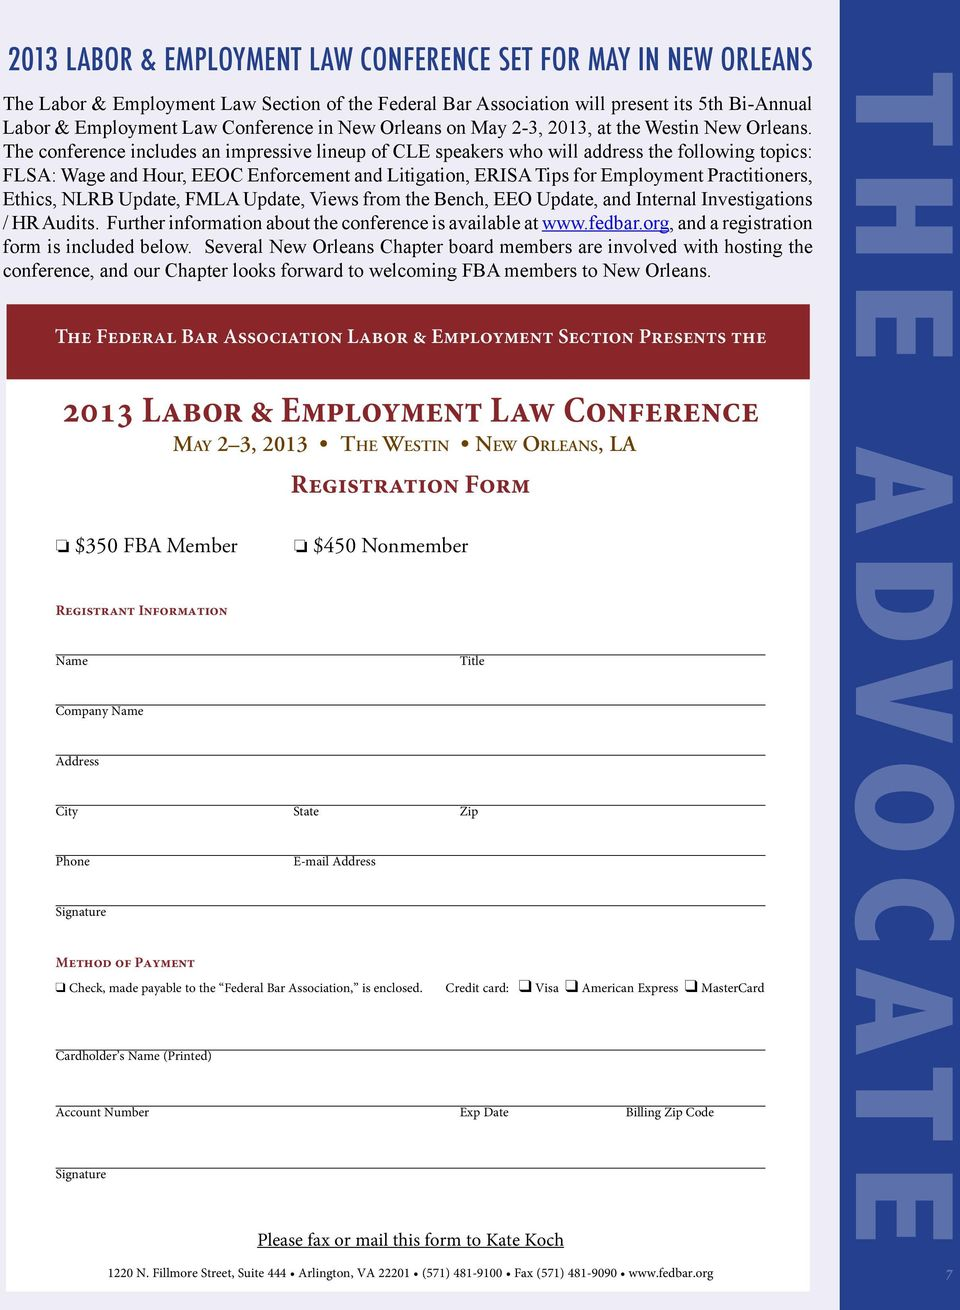 The conference includes an impressive lineup of CLE speakers who will address the following topics: FLSA: Wage and Hour, EEOC Enforcement and Litigation, ERISA Tips for Employment Practitioners,